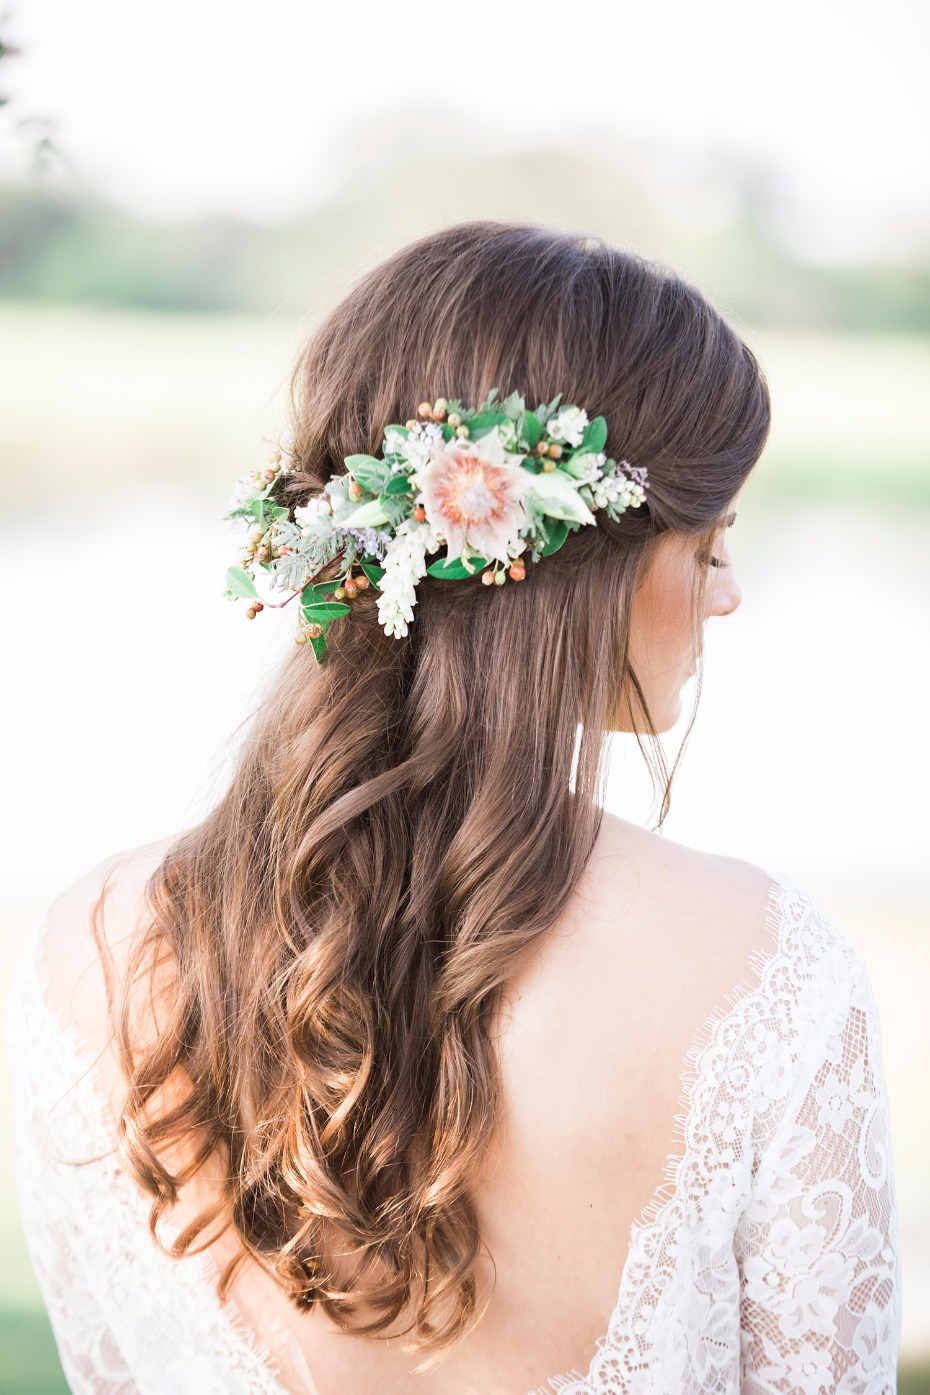 Perfect wedding hair with florals accessory